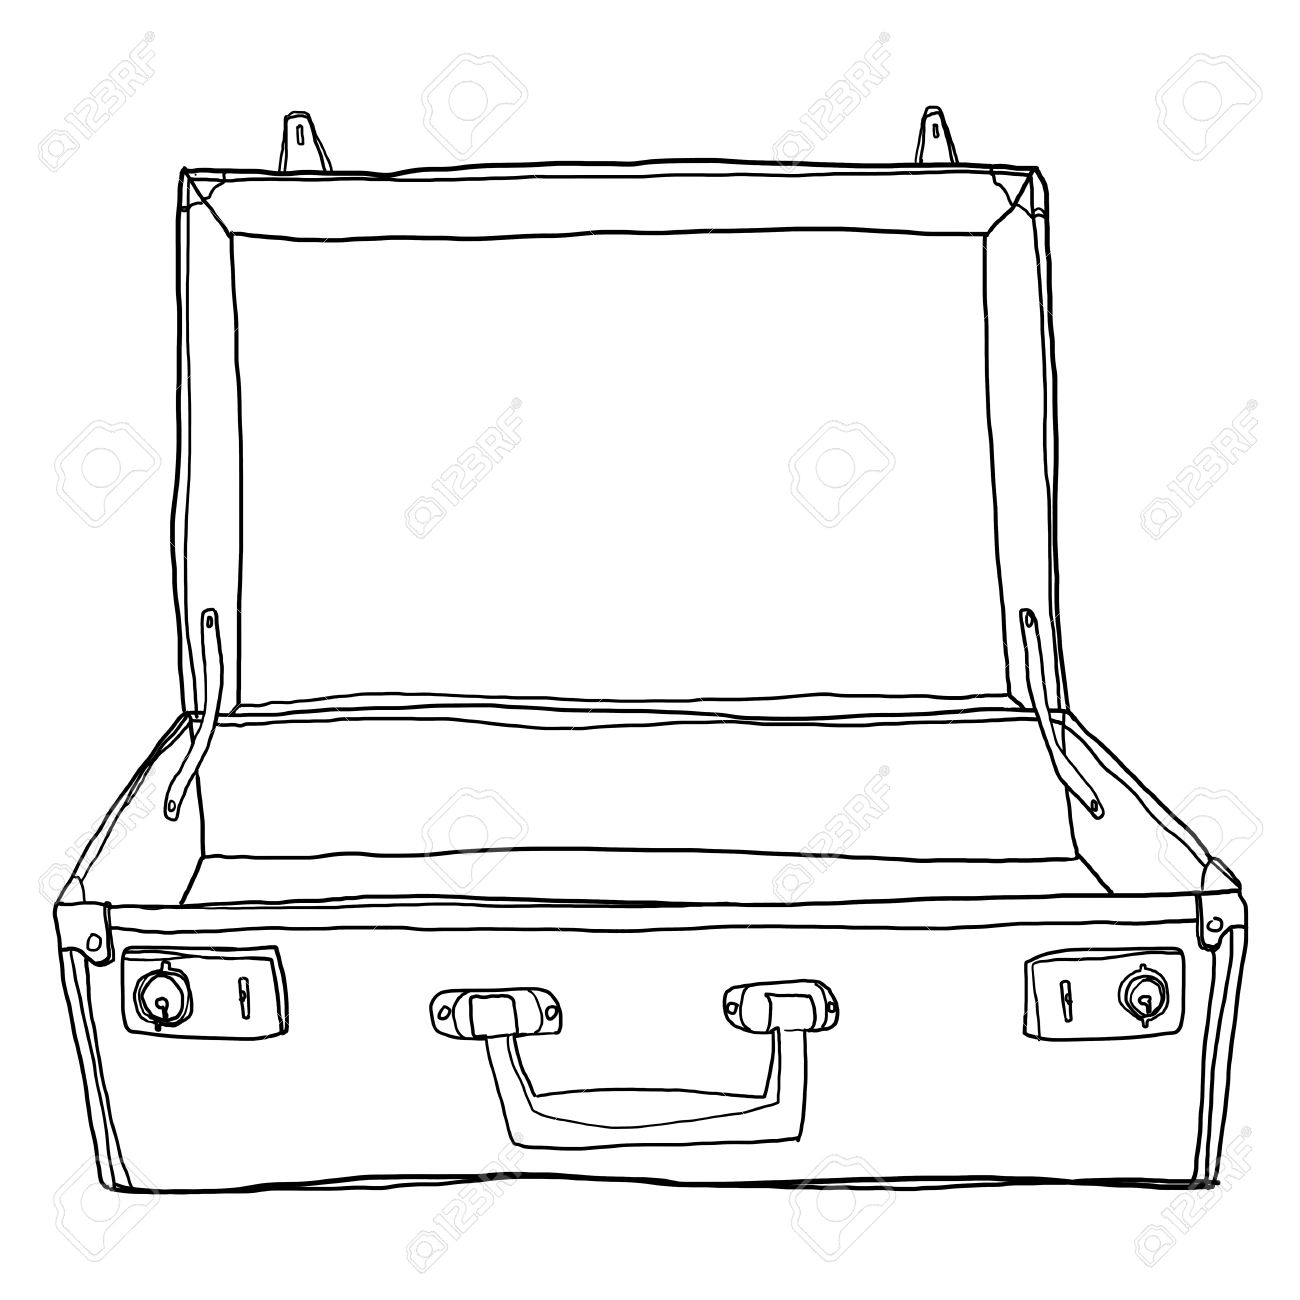 Suitcase Drawing at GetDrawings.com | Free for personal use Suitcase ...